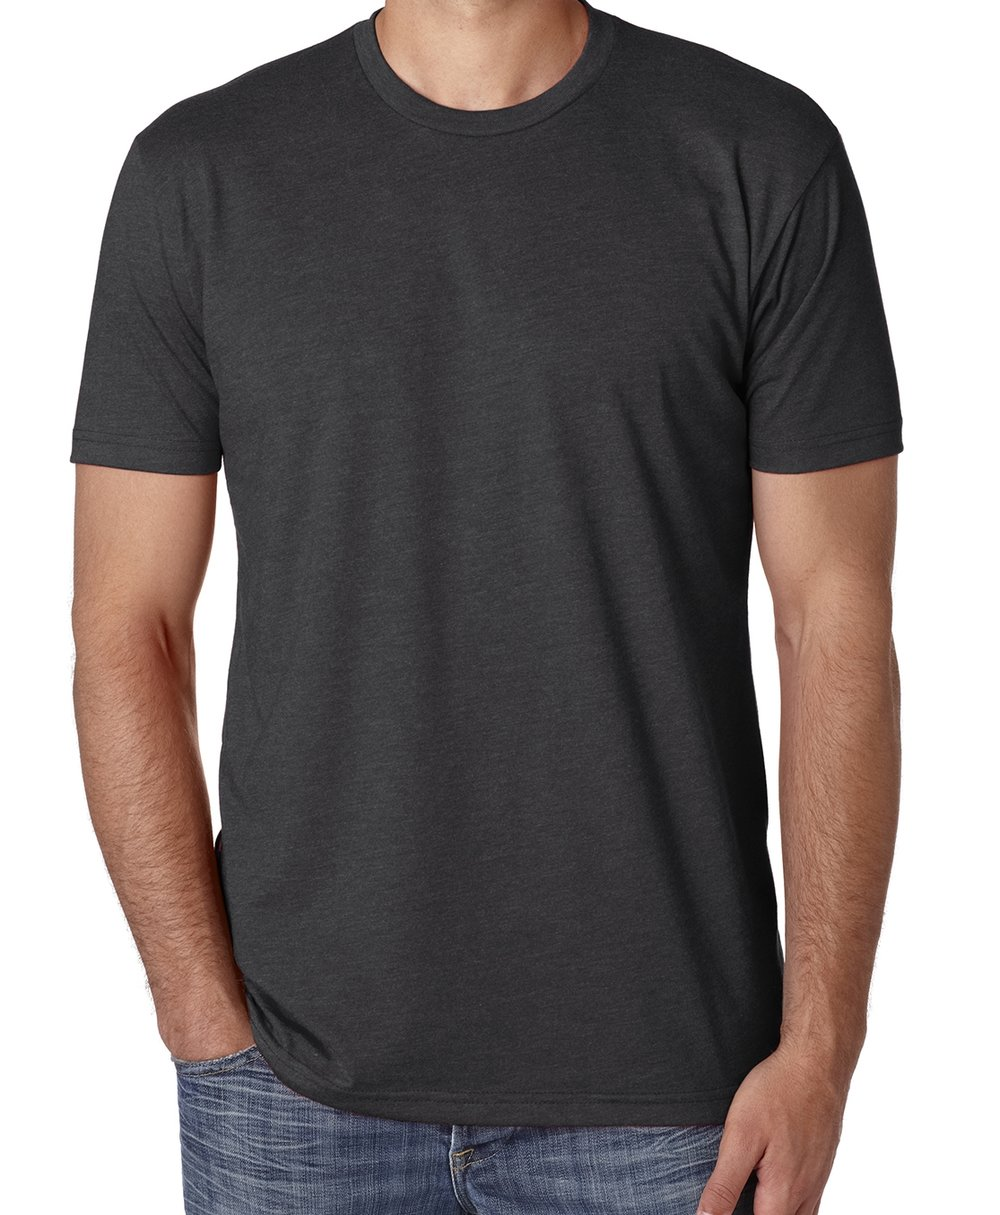 Unisex CVC crew neck t-shirt (cotton polyester blend, great fit, very soft, $$).